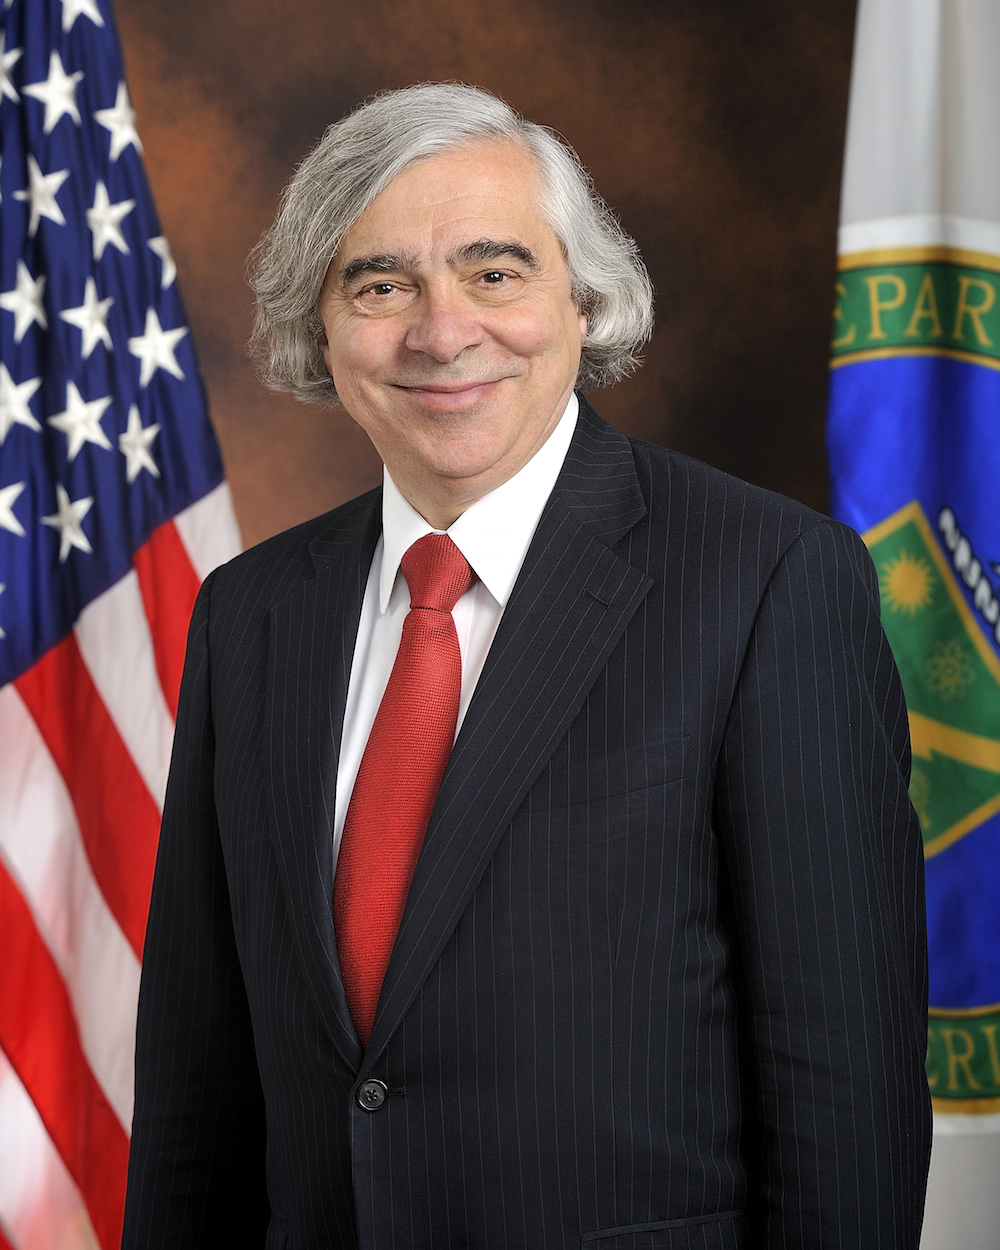 2014_07_moniz_official_portrait_standing